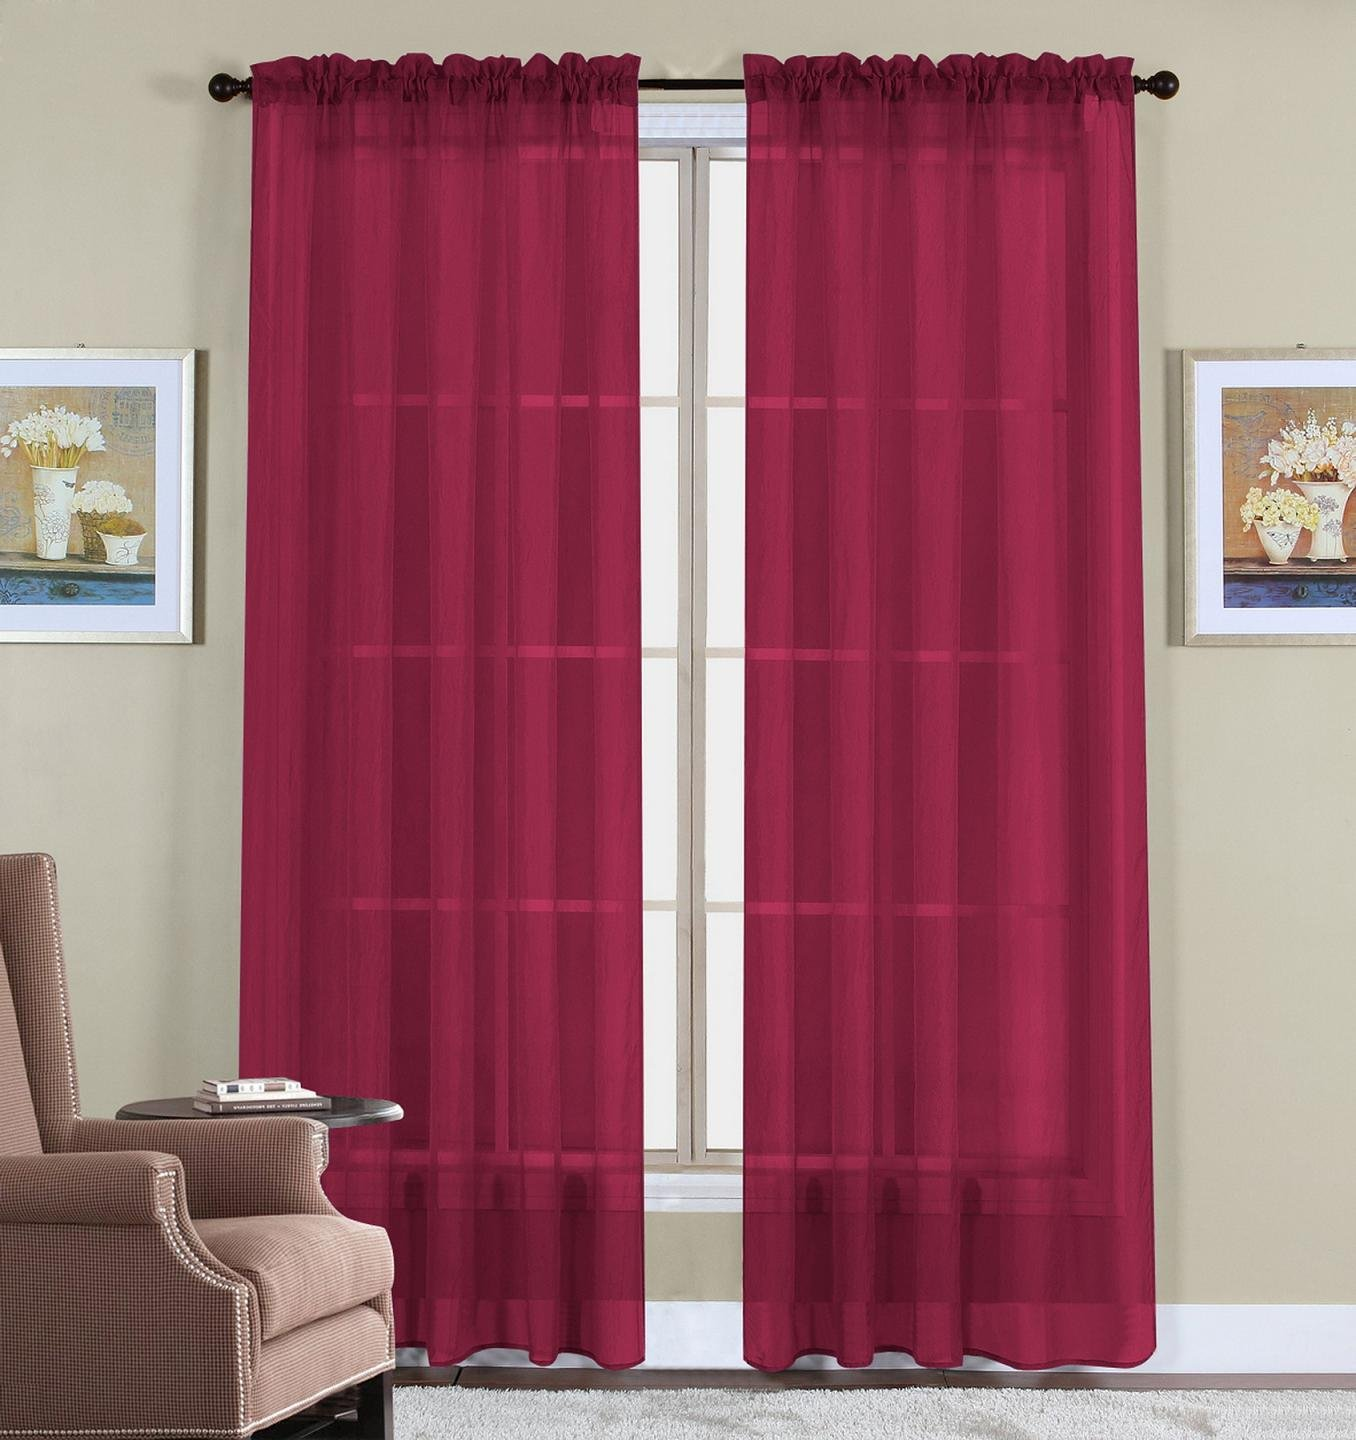 Hot pink curtains - Amazon Com 2 Piece Set 63 Long Solid Sheer Curtains Panels Window Drape Sage Green Home Kitchen